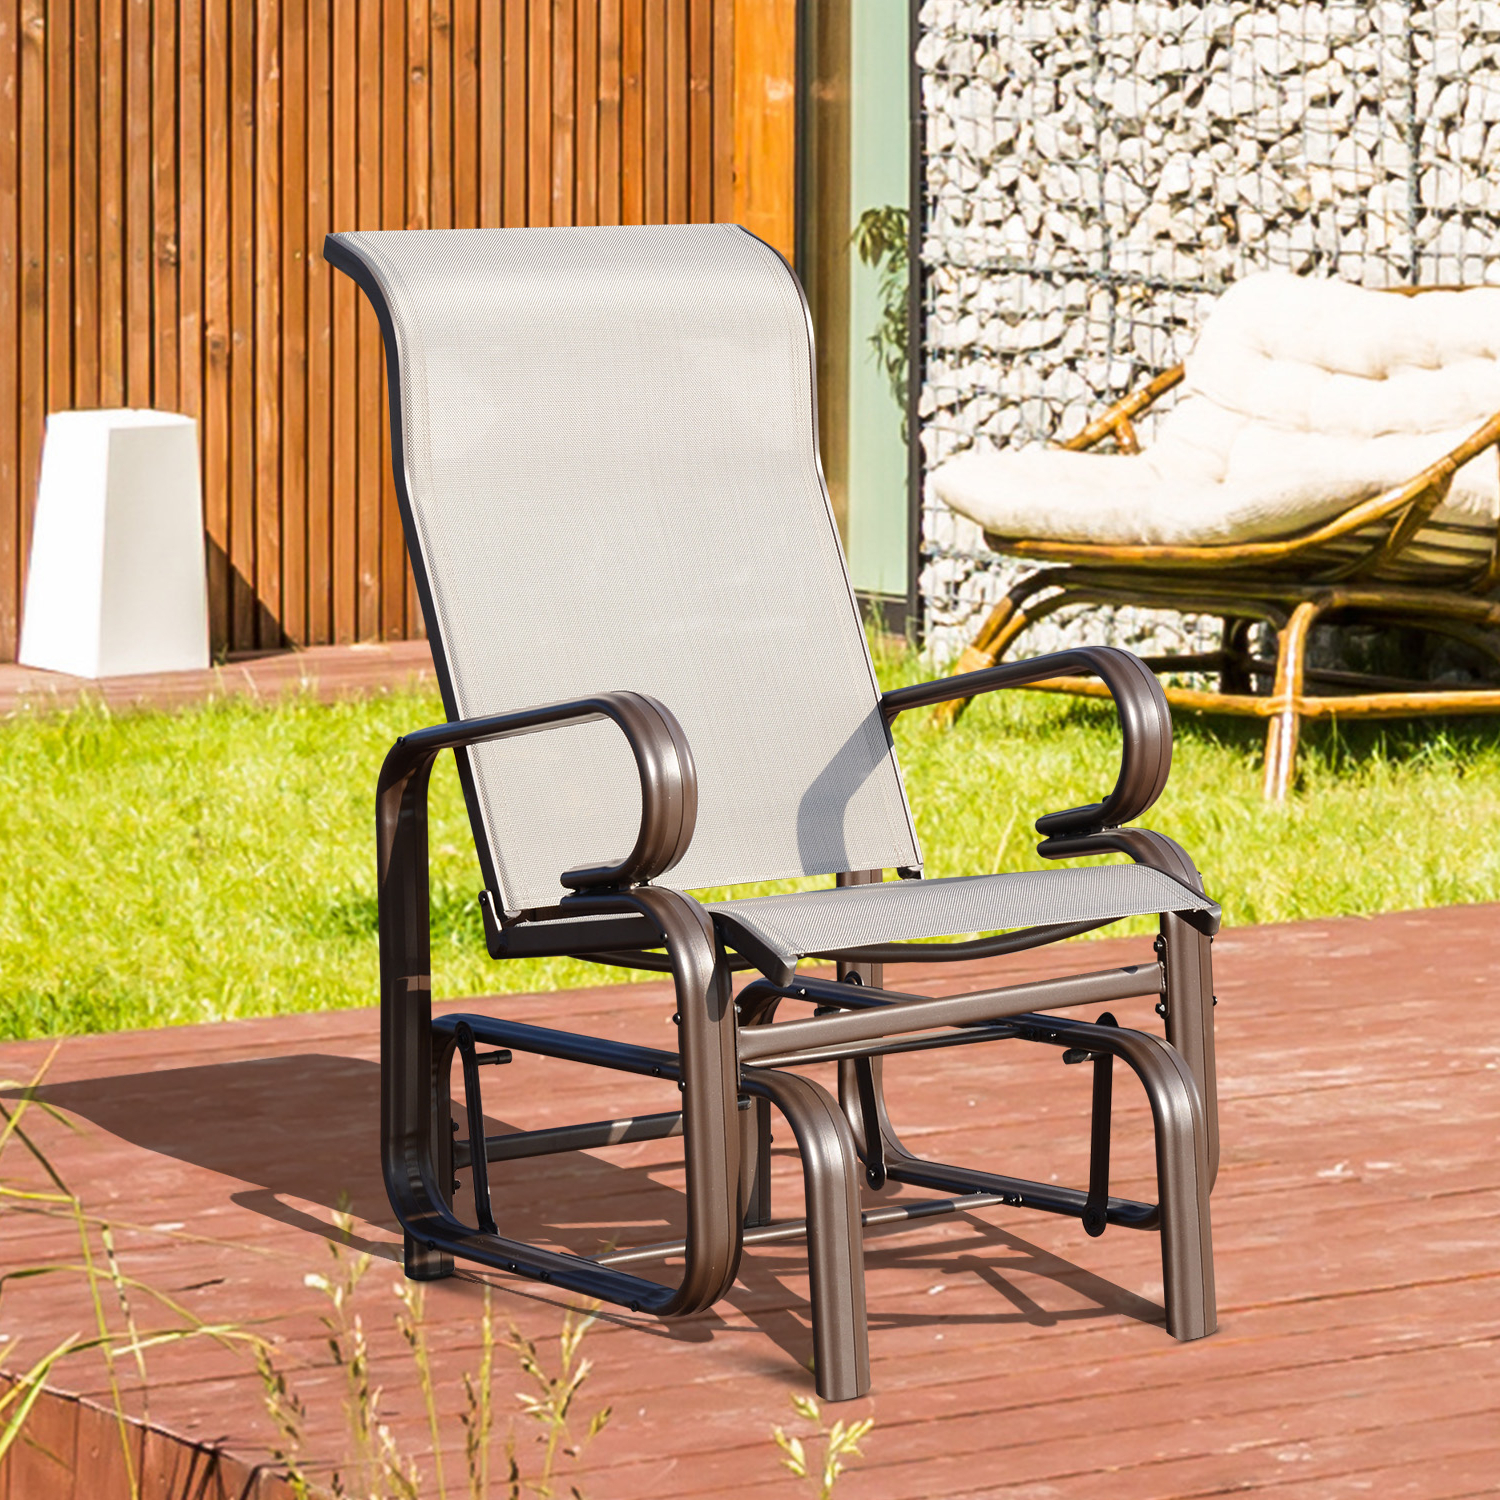 Outdoor Swing Glider Chairs With Powder Coated Steel Frame With Widely Used Outsunny Garden Glider Seat Outdoor Rocking Chair Gliding Swing Seat Patio Deck Porch Furniture (View 20 of 25)